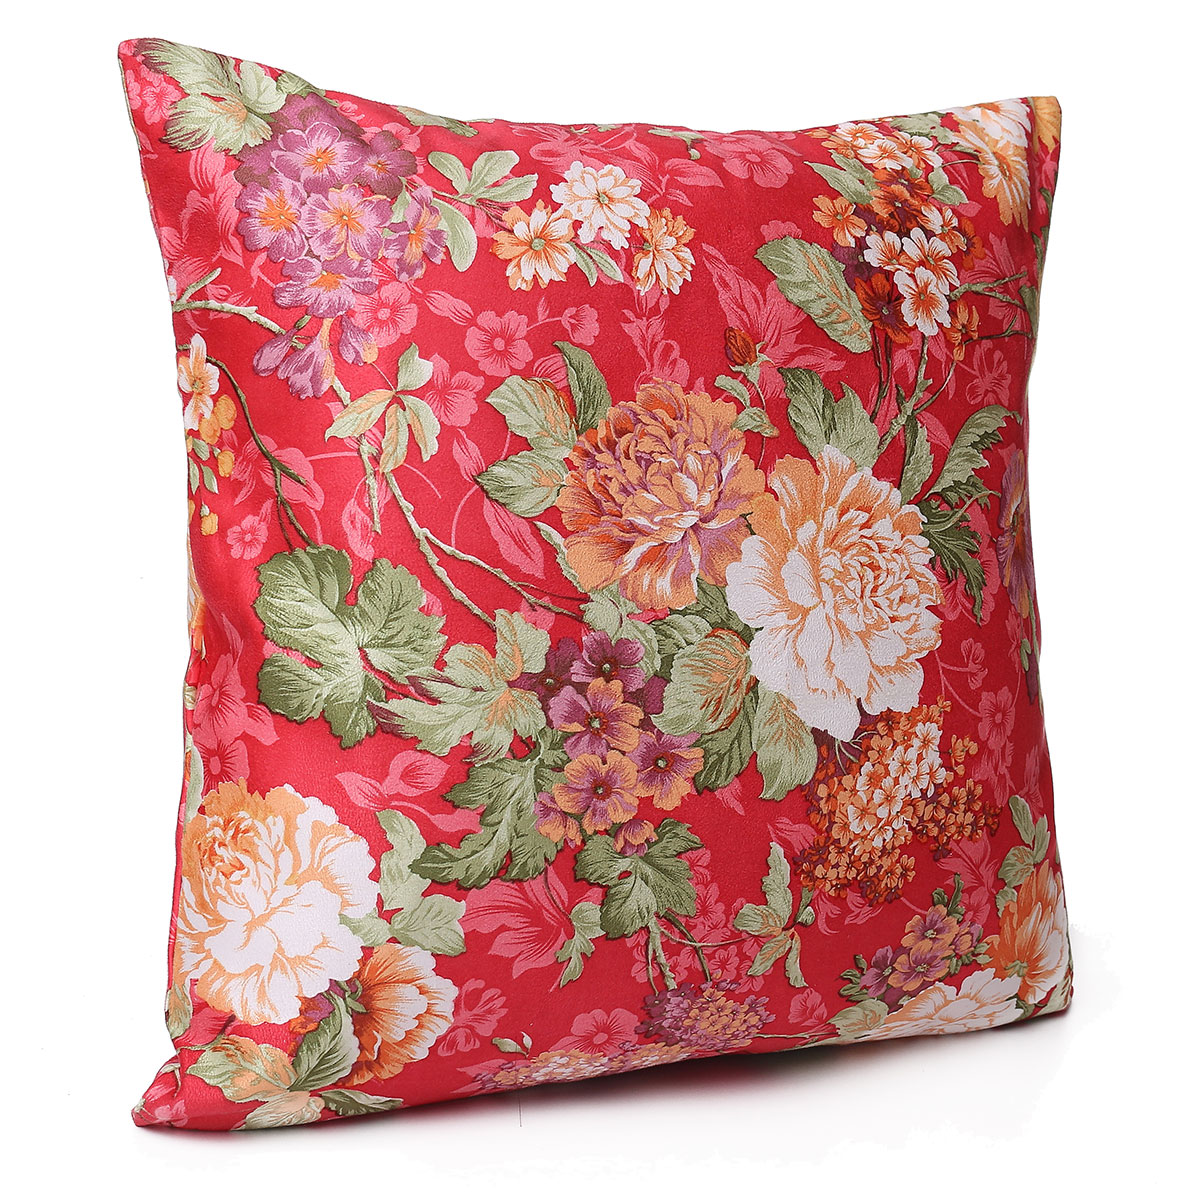 Floral Print Square Suede Bed Cushion Cover Throw Pillow Case Sofa Home Decor Lazada Malaysia